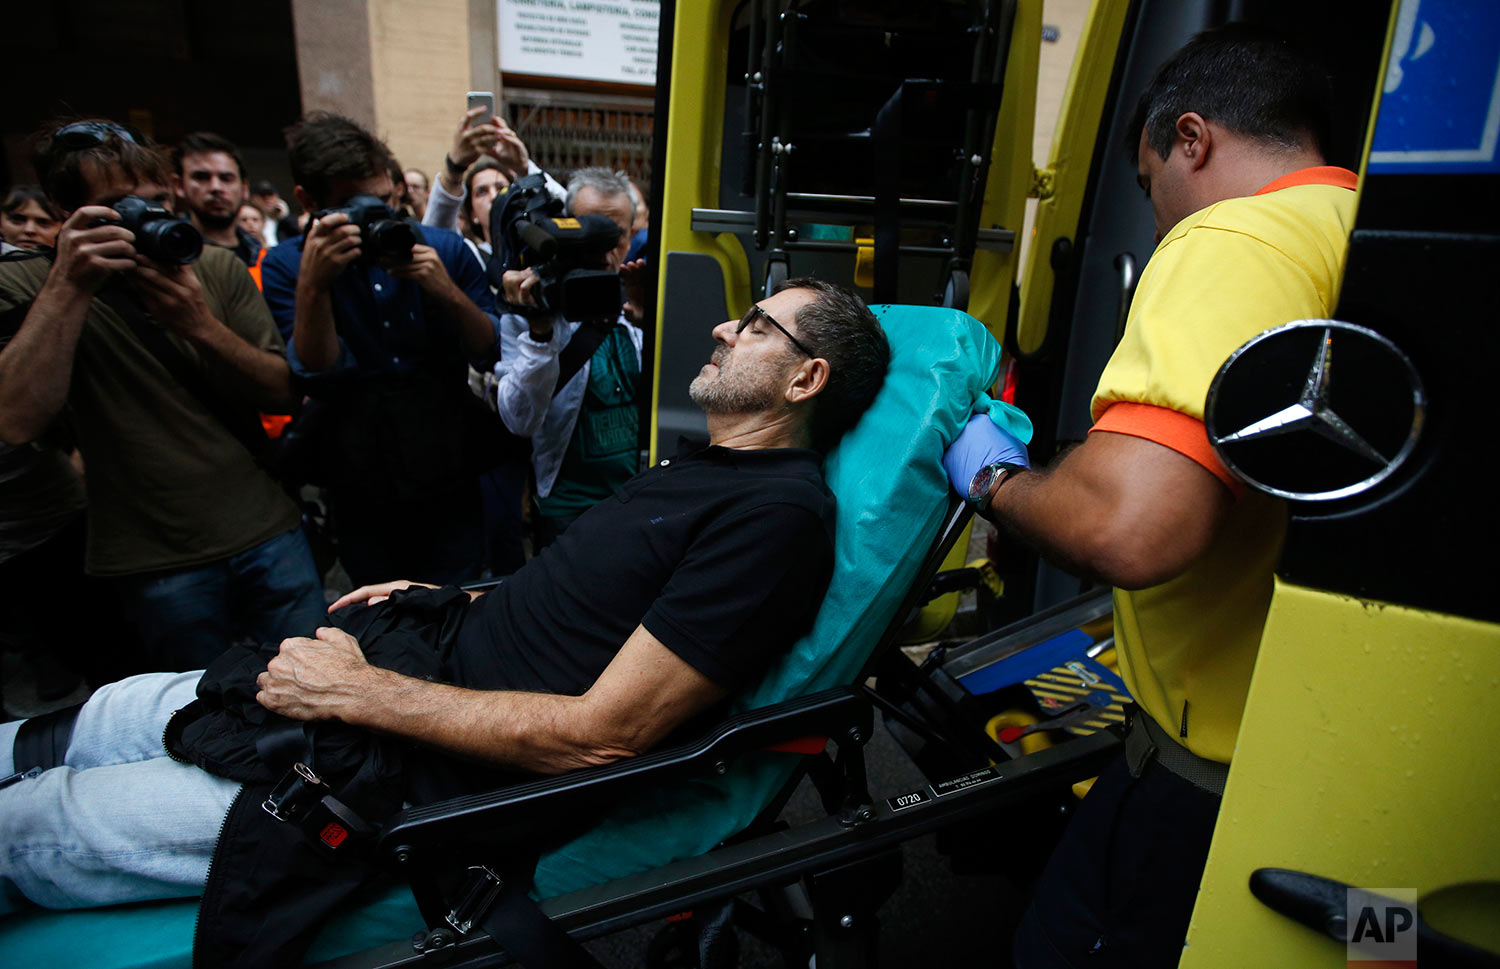 An injured man is taken into an ambulance near a school assigned to be a polling station by the Catalan government in Barcelona, Spain, Sunday, Oct. 1, 2017. Spanish riot police have forcefully removed a few hundred would-be voters from several polling stations in Barcelona.(AP Photo/Emilio Morenatti)